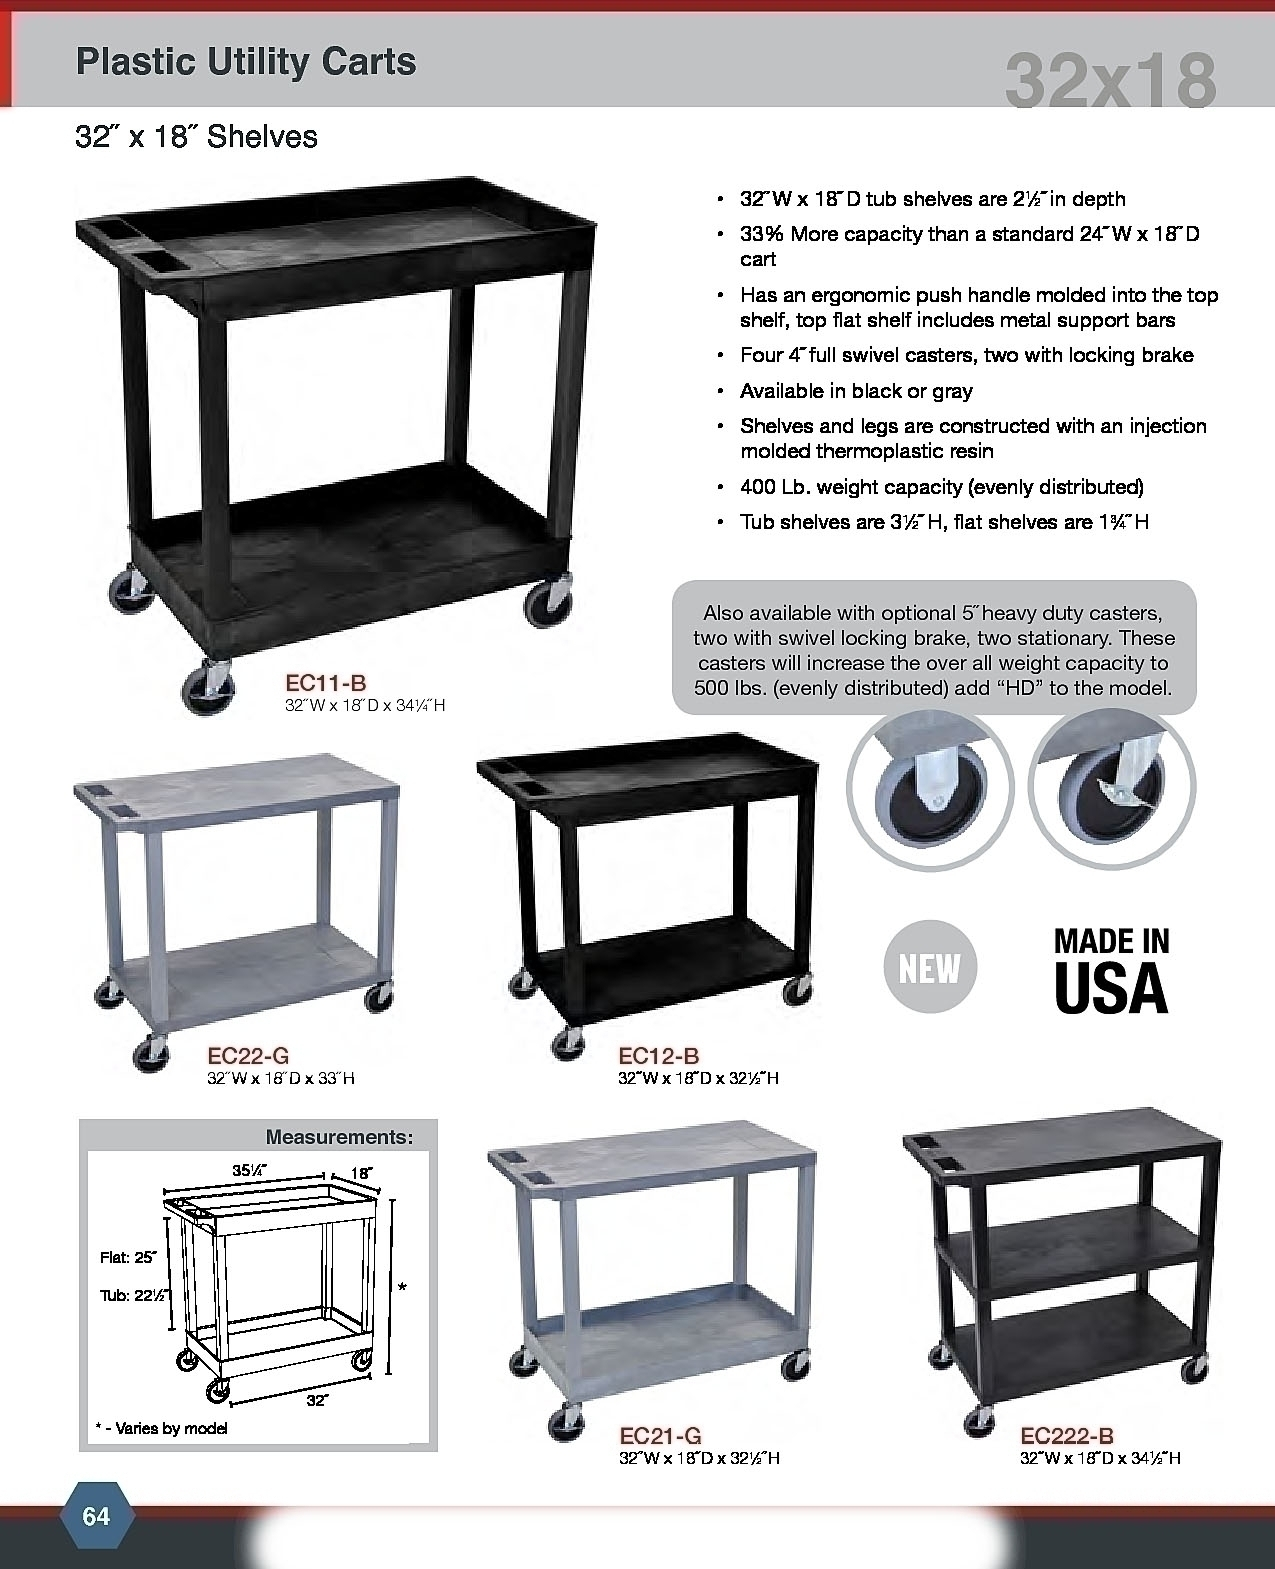 0192CatalogPage1Oct20150064.jpg